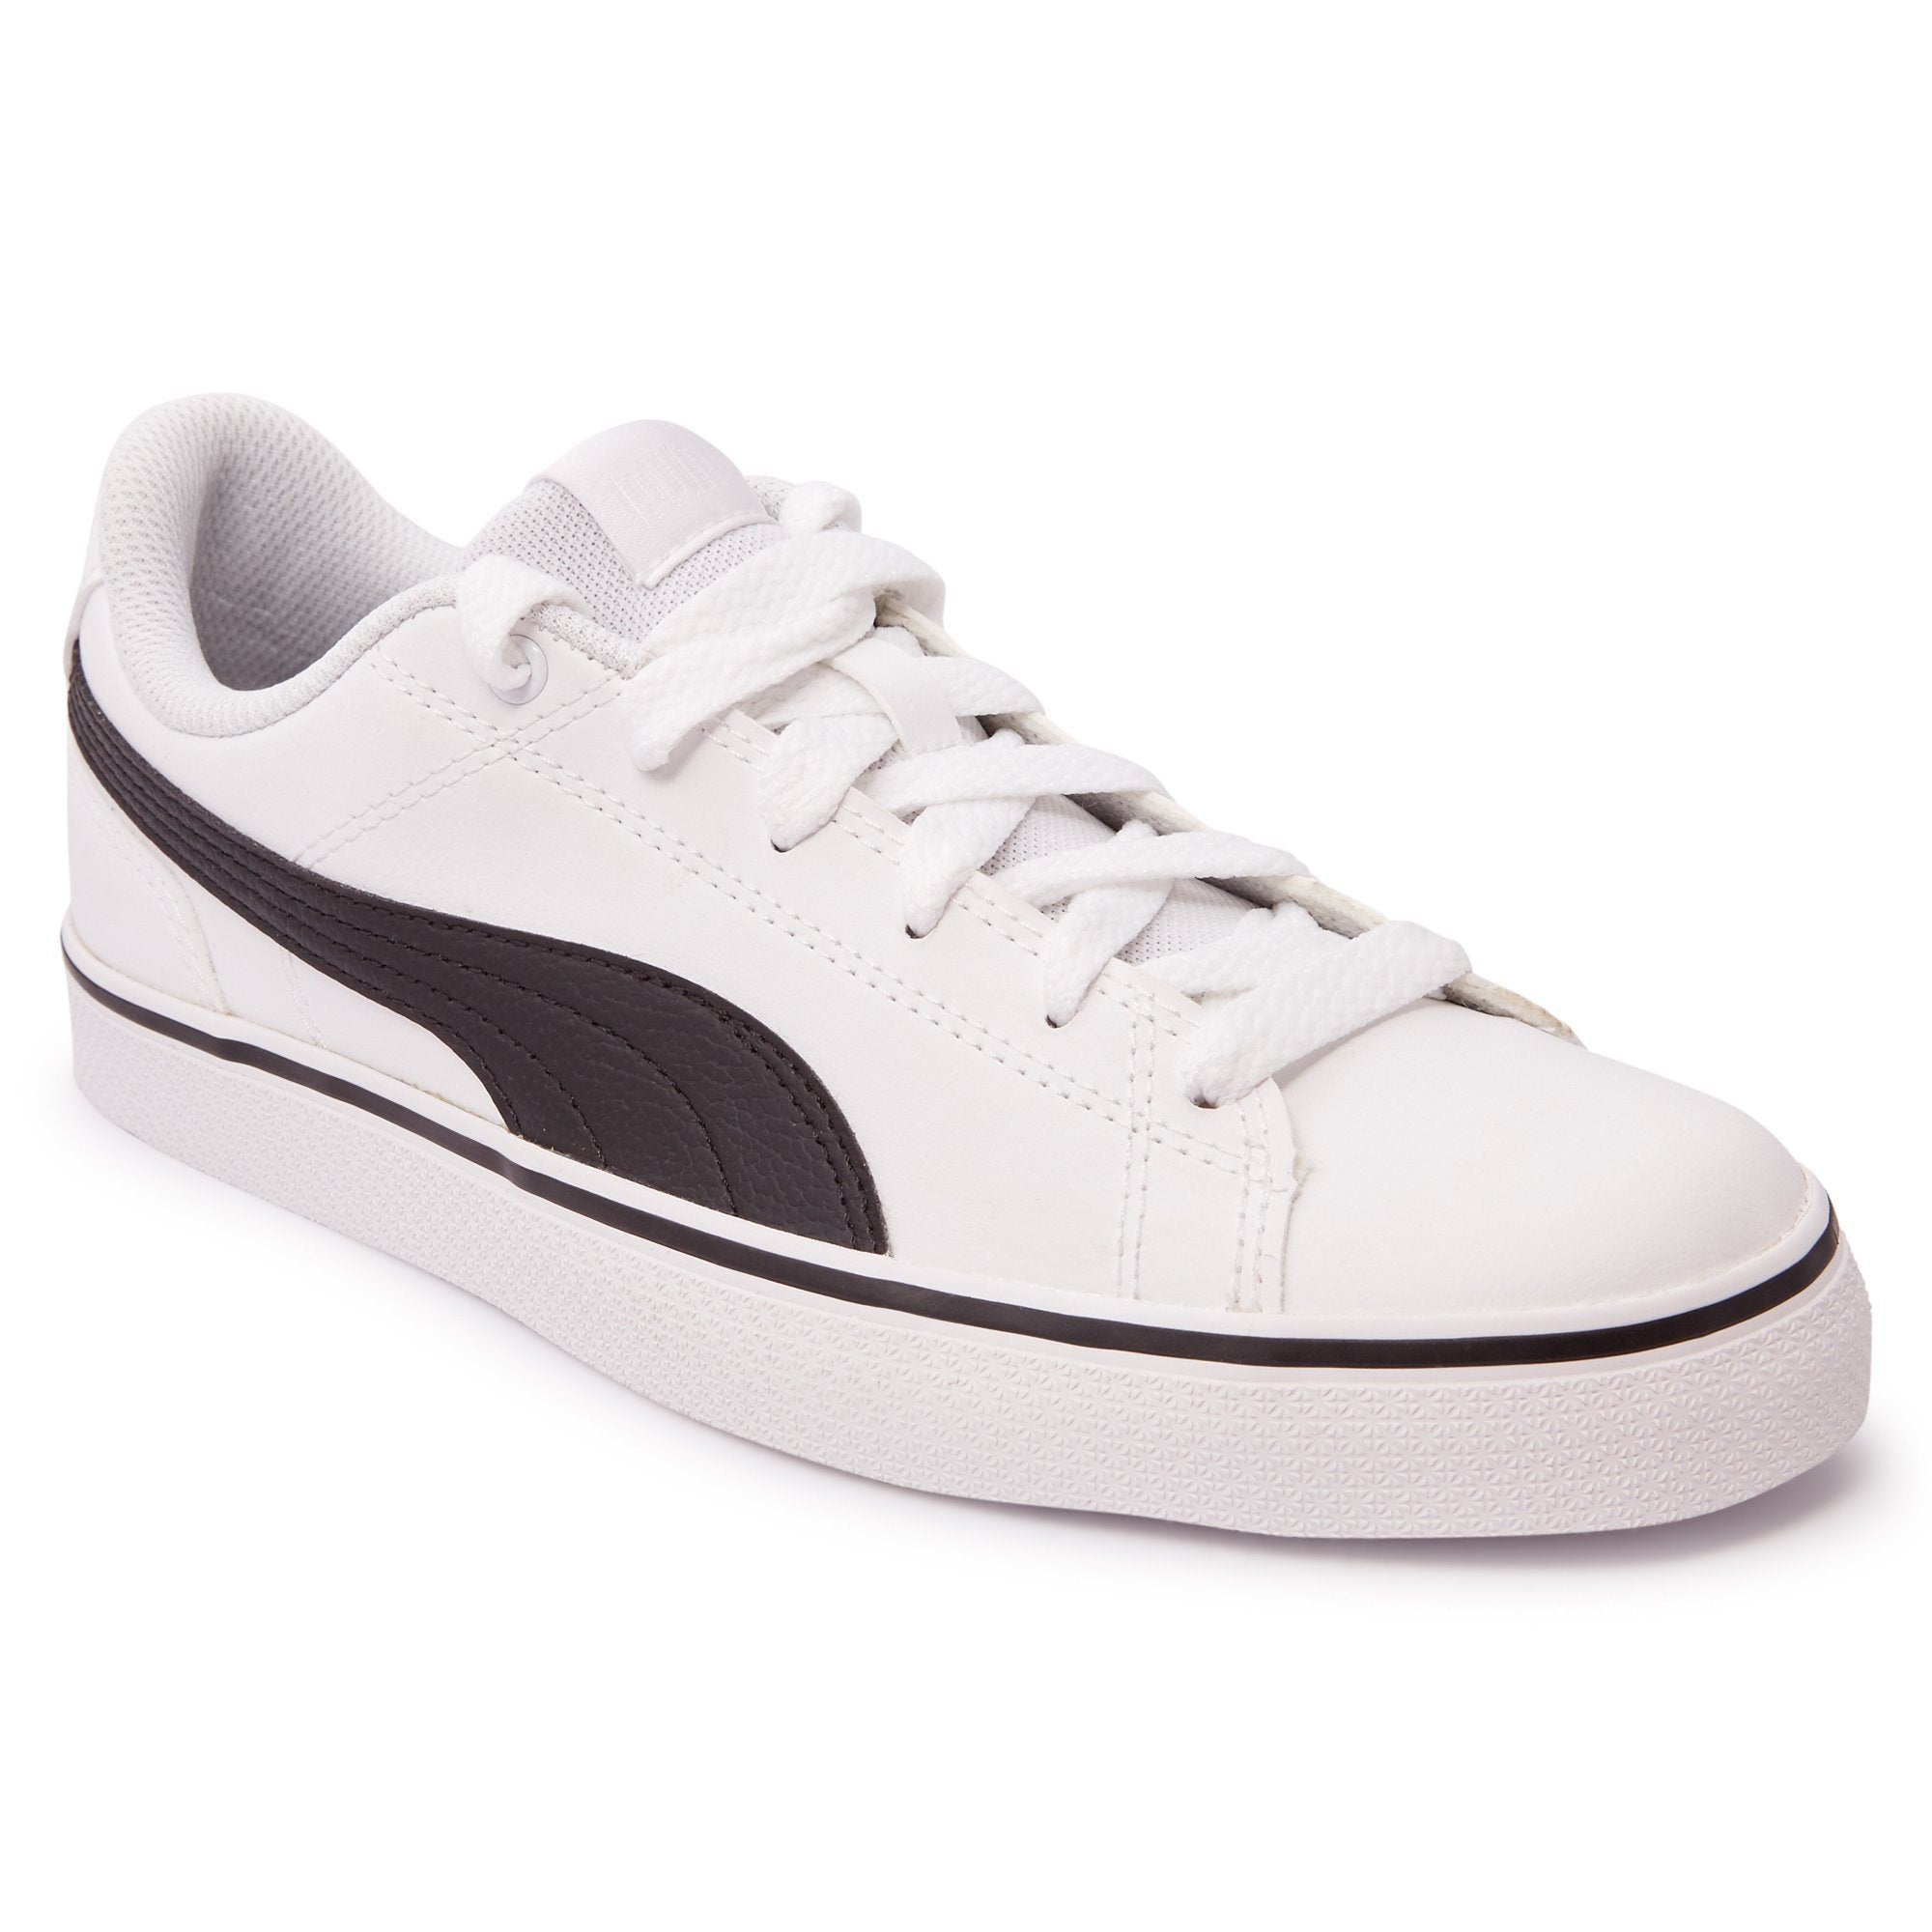 Puma Court Point Vulc - White Footwear Puma  (2122603757627)